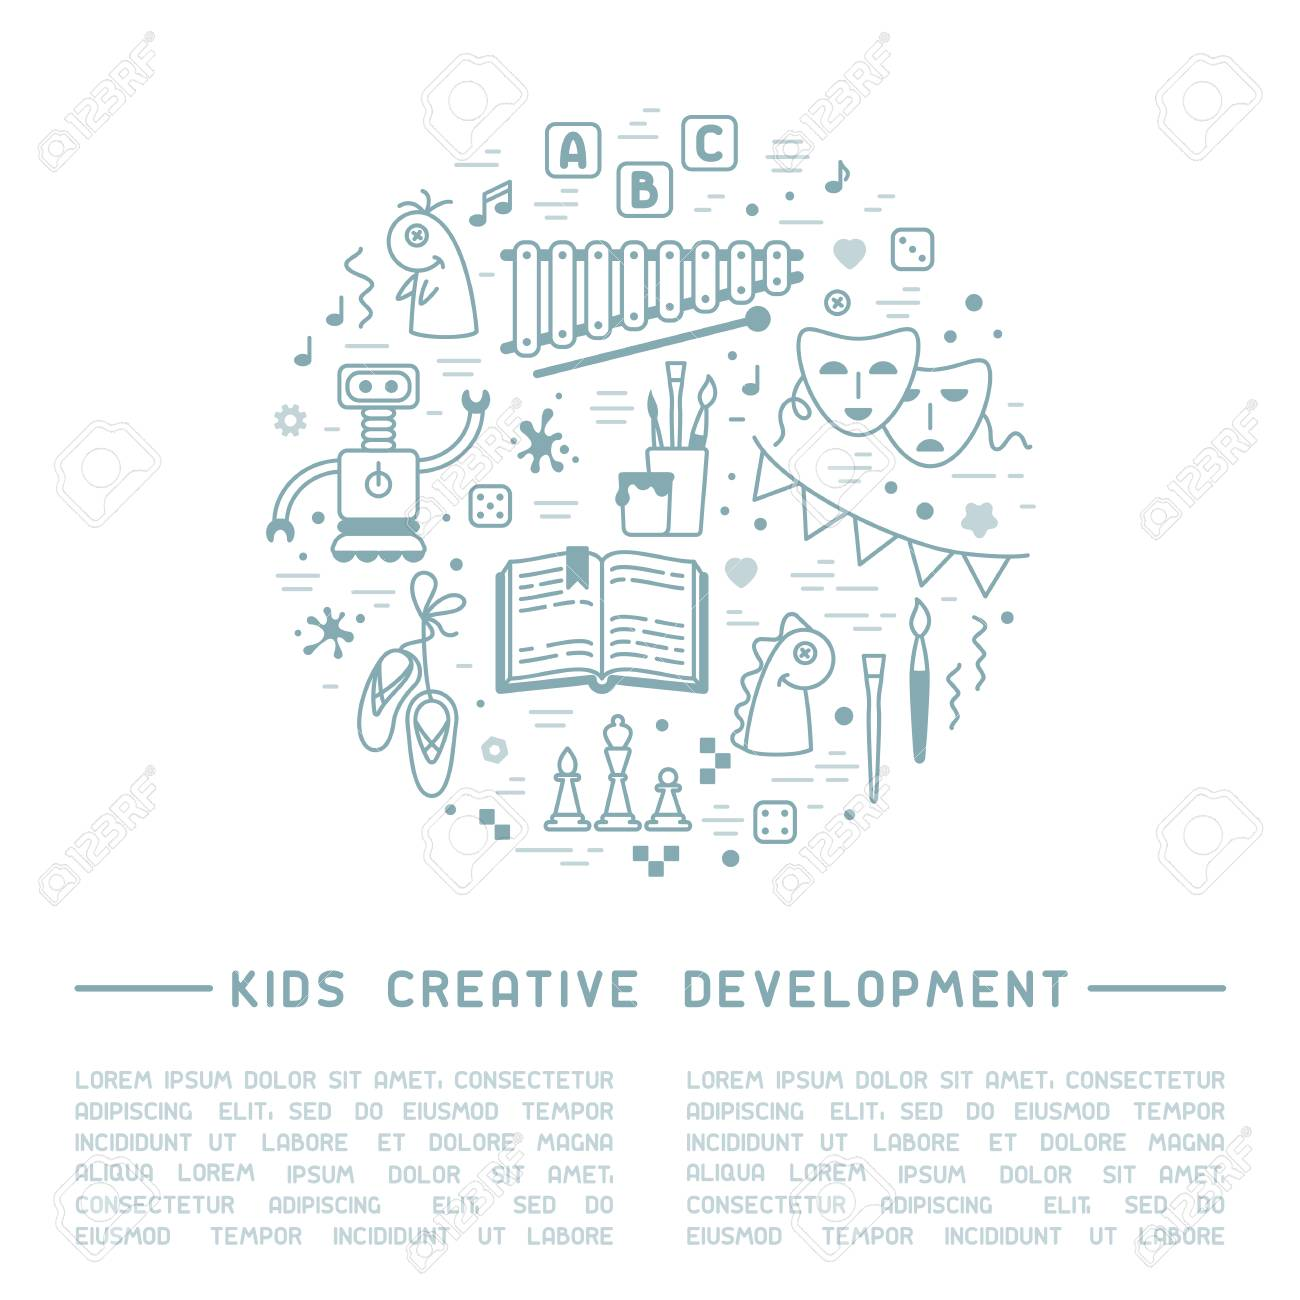 Kids creative development info poster with kids things and sample text. Linear style vector illustration - 117014547